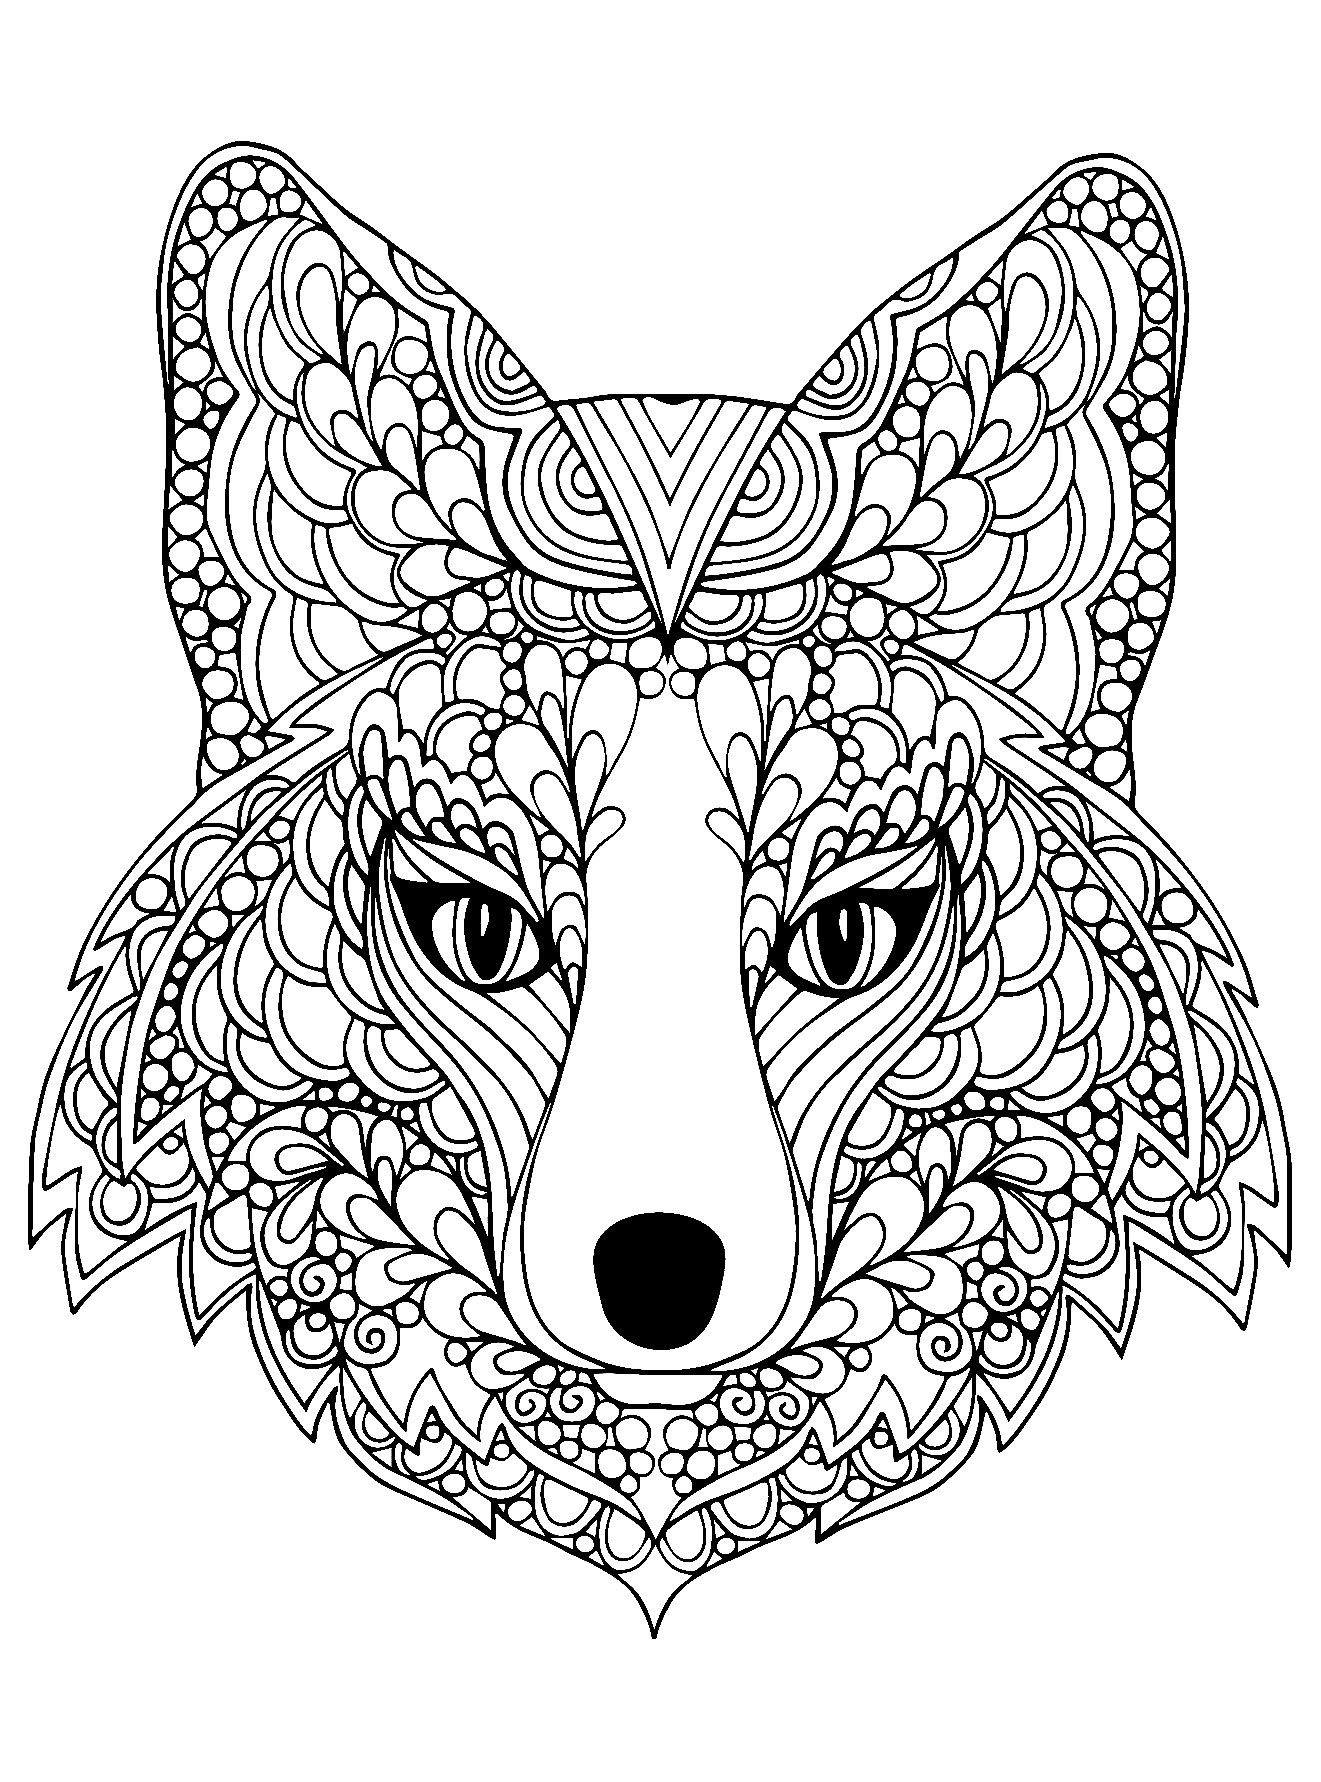 Tete Renard Coloriages Renards Just Color Coloriage Mandala